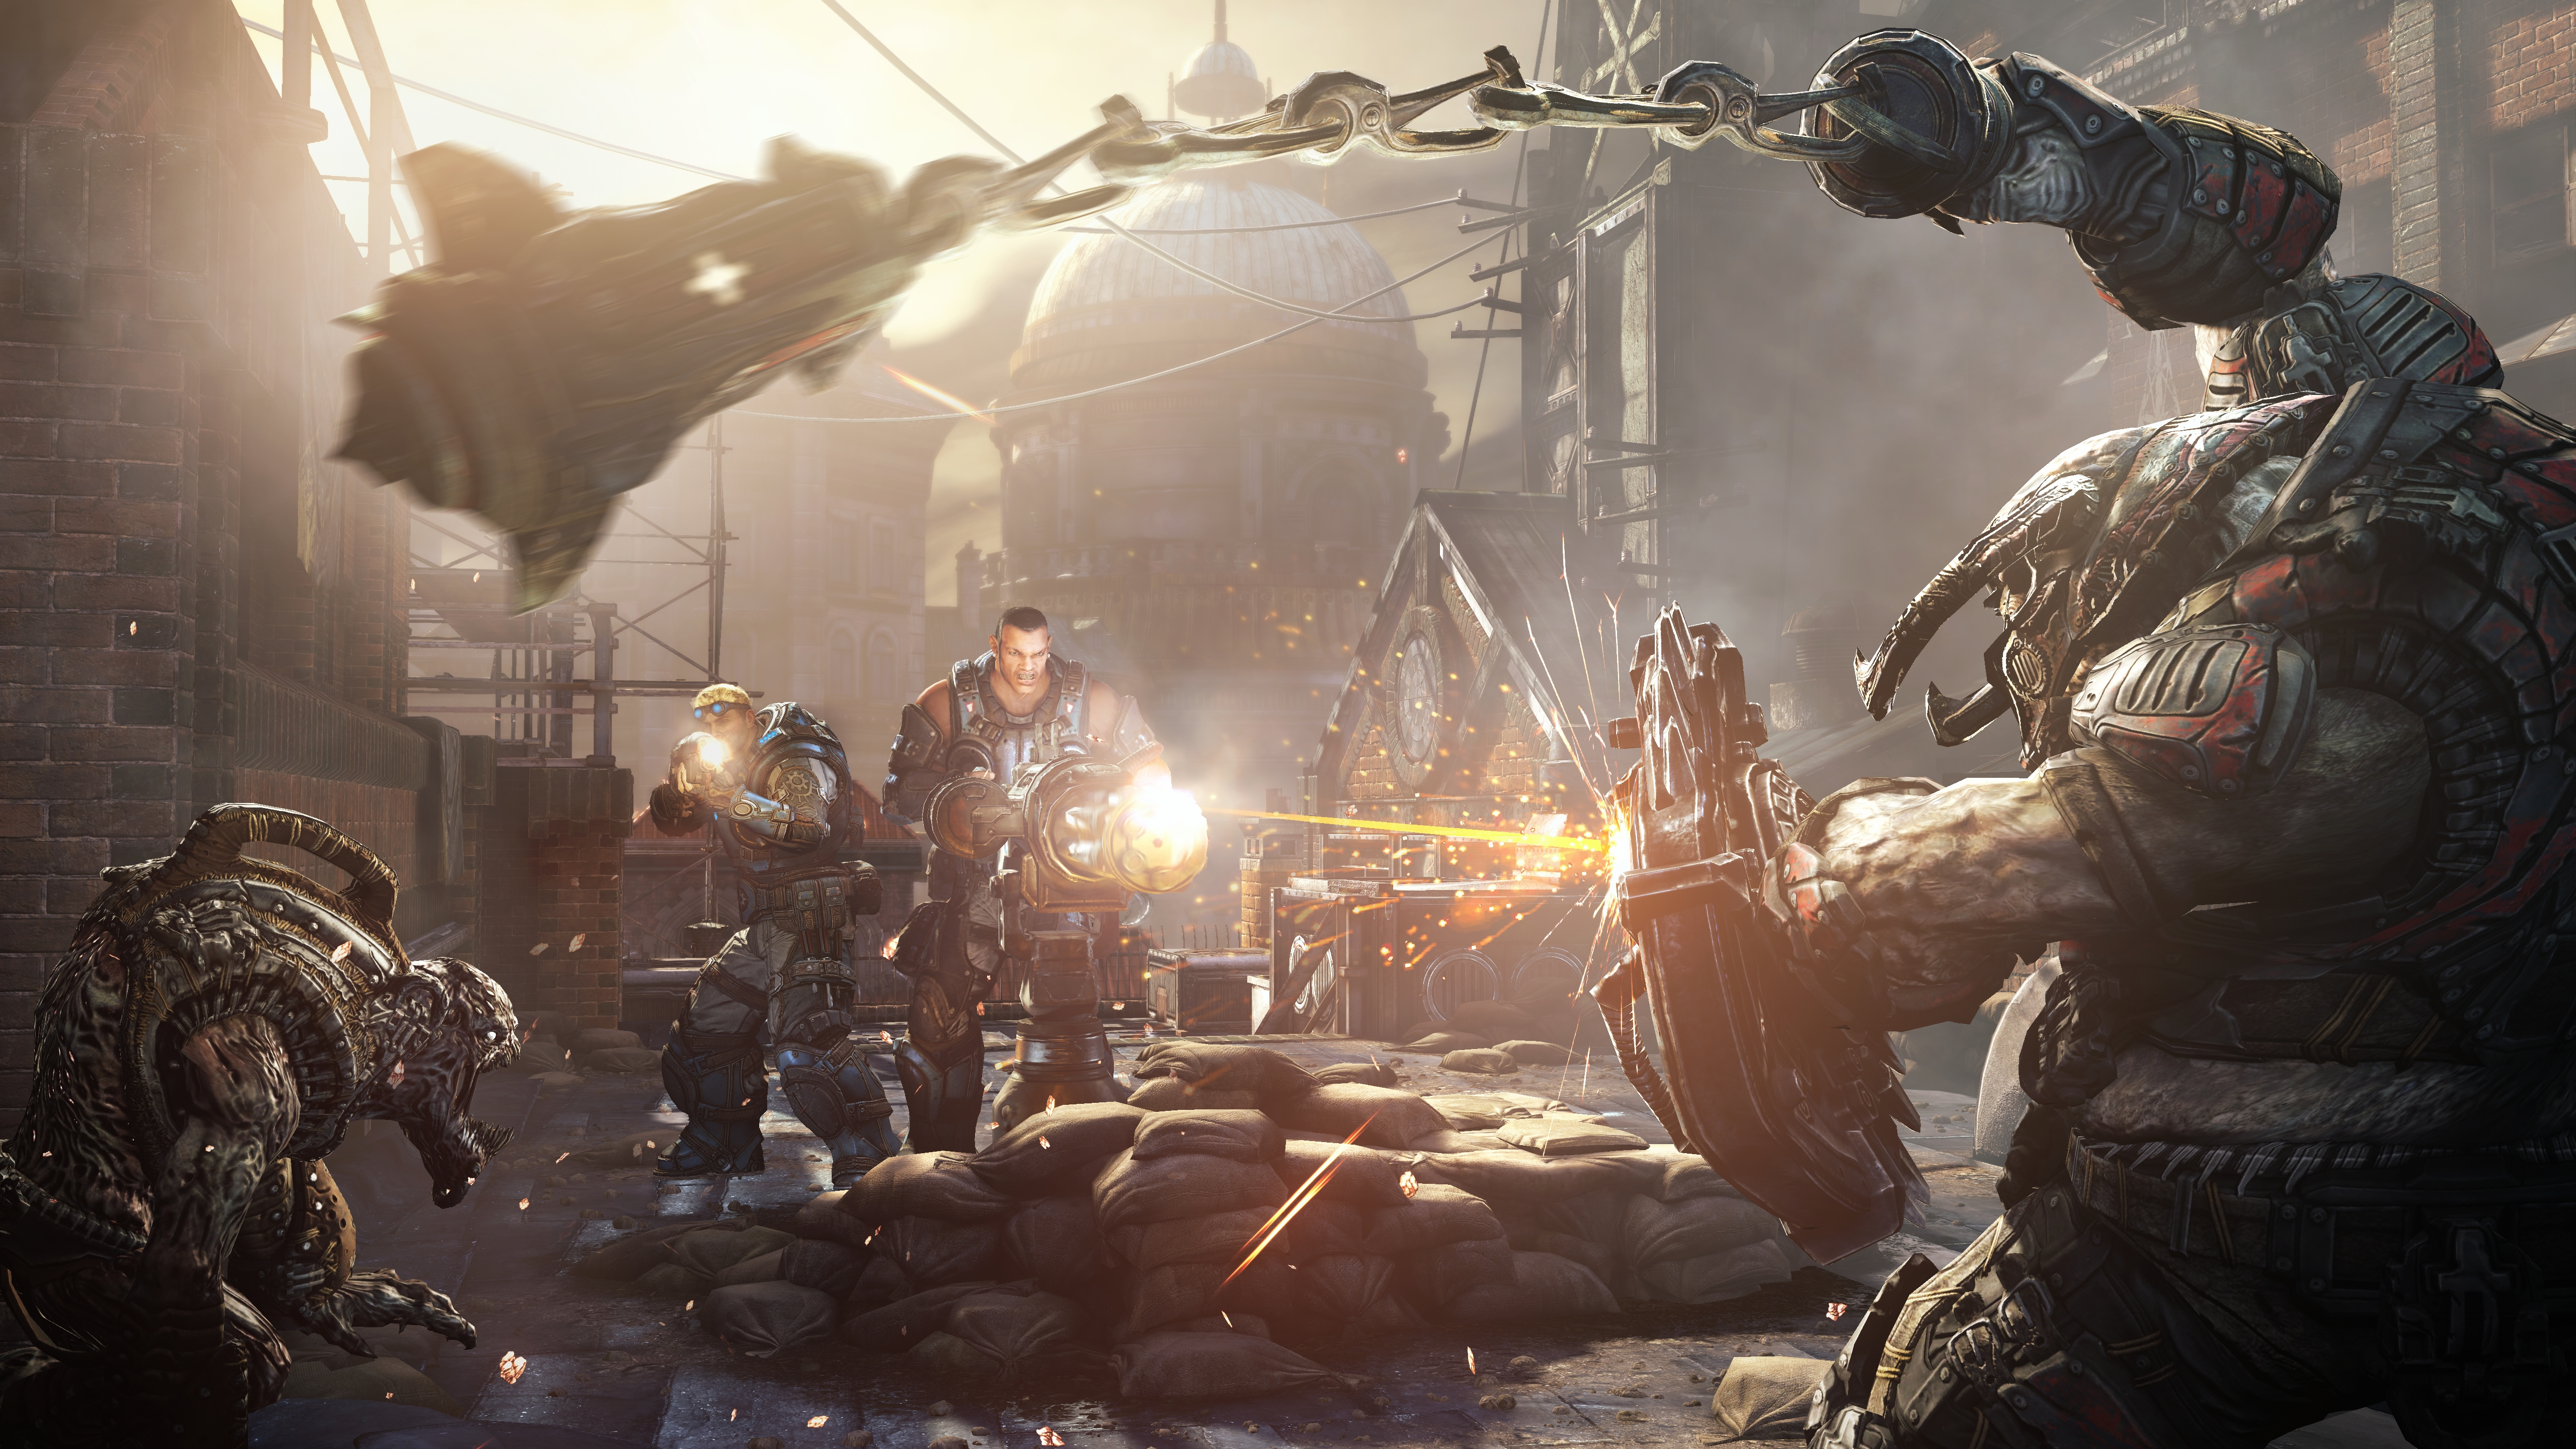 wallpapers of Gears of War Judgement You are downloading Gears of War 5120x2880